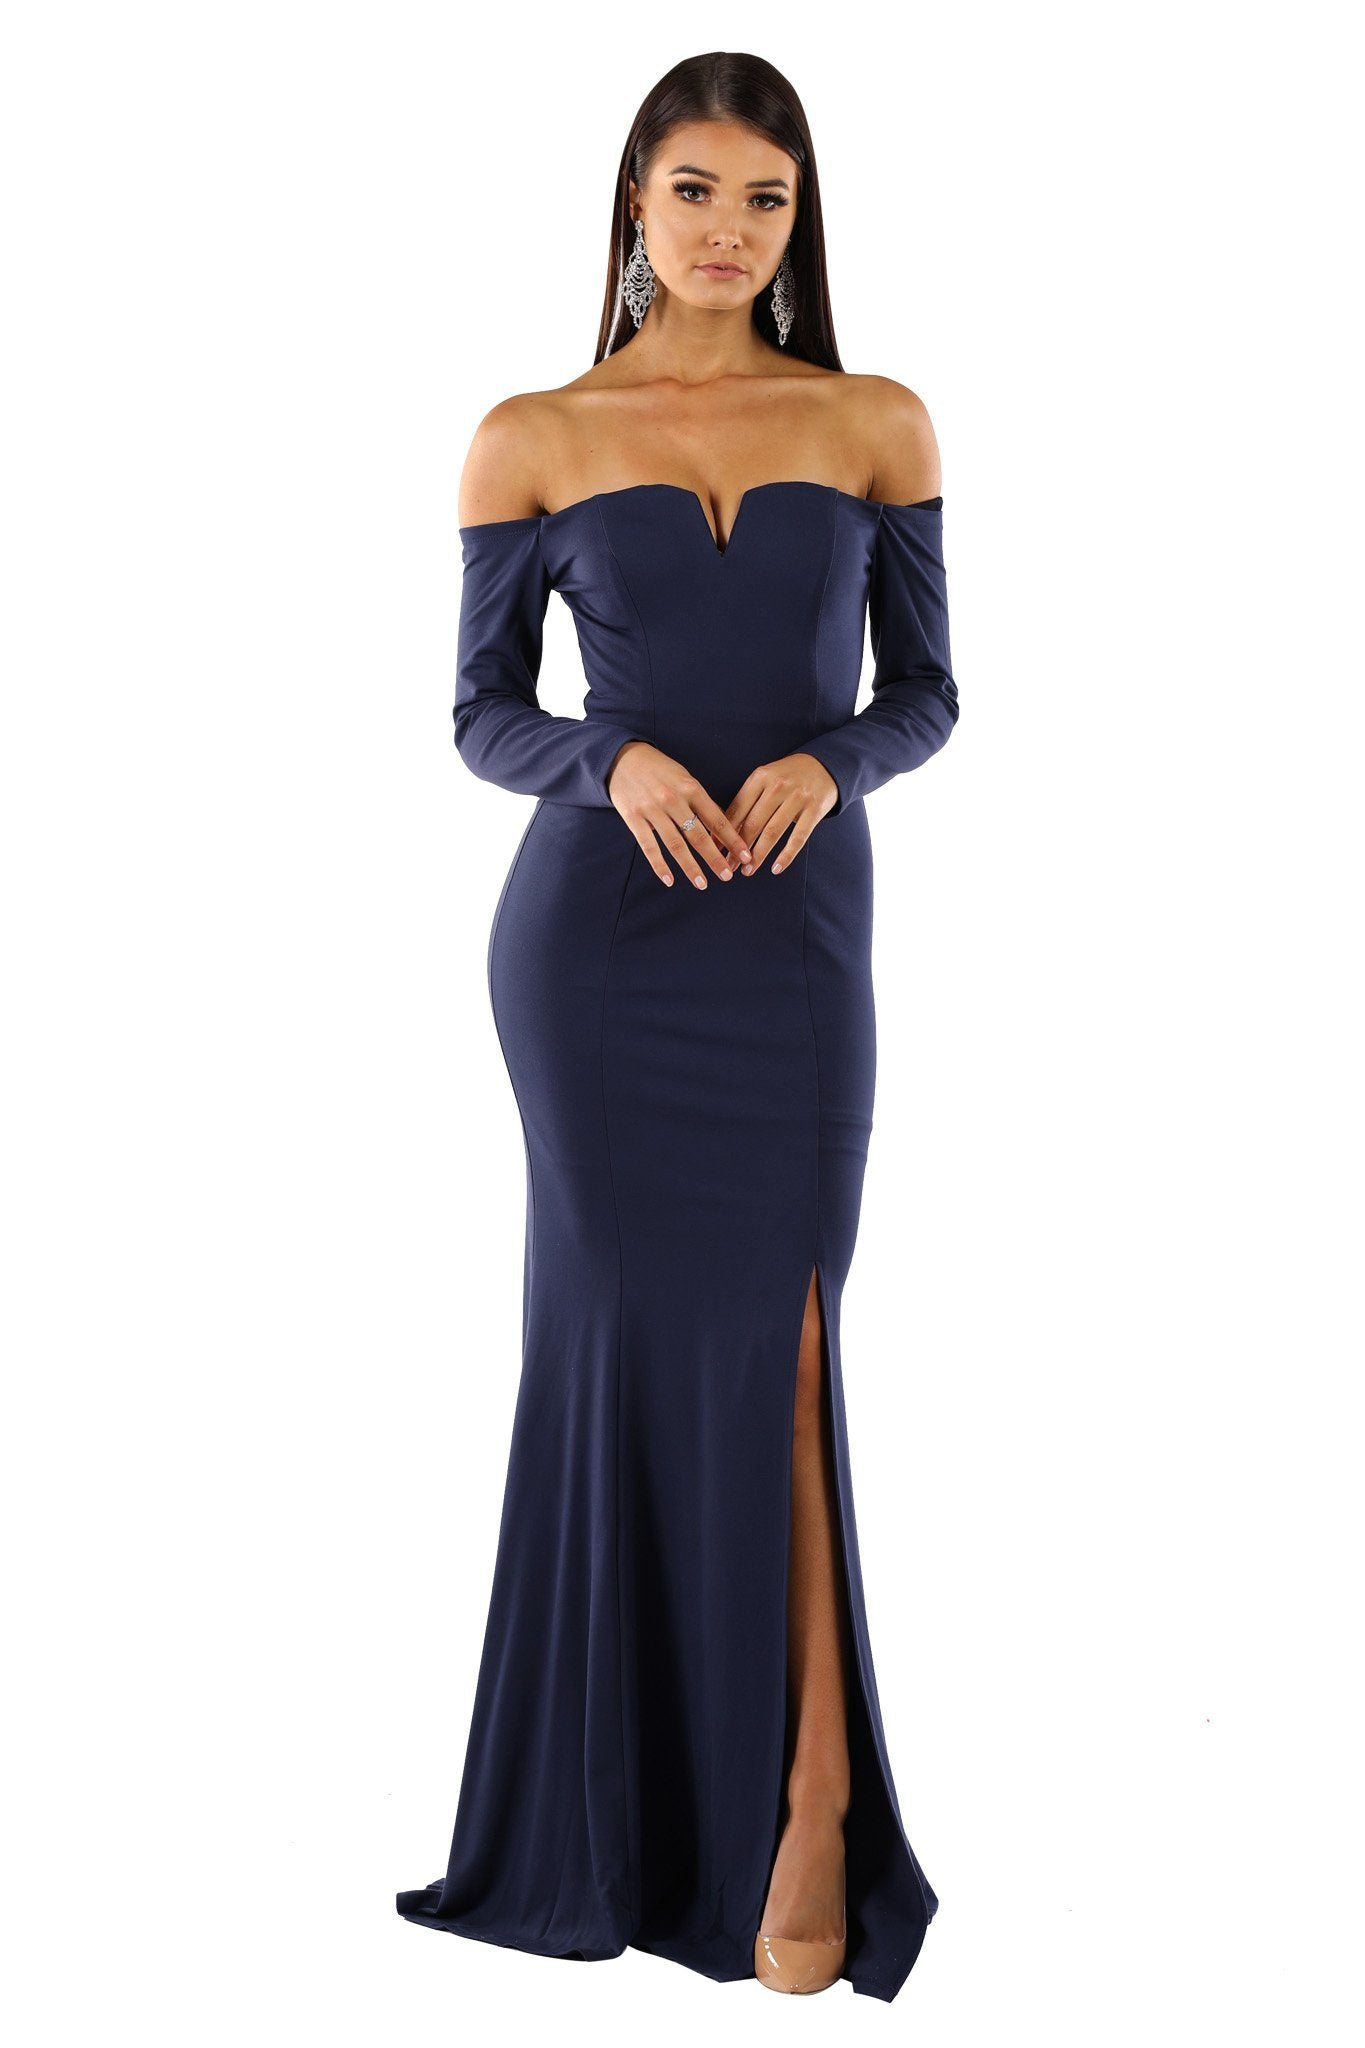 Navy fitted long sleeve floor length evening gown with off-shoulder bodice, V-wired neckline, high slit and slightly flared skirt